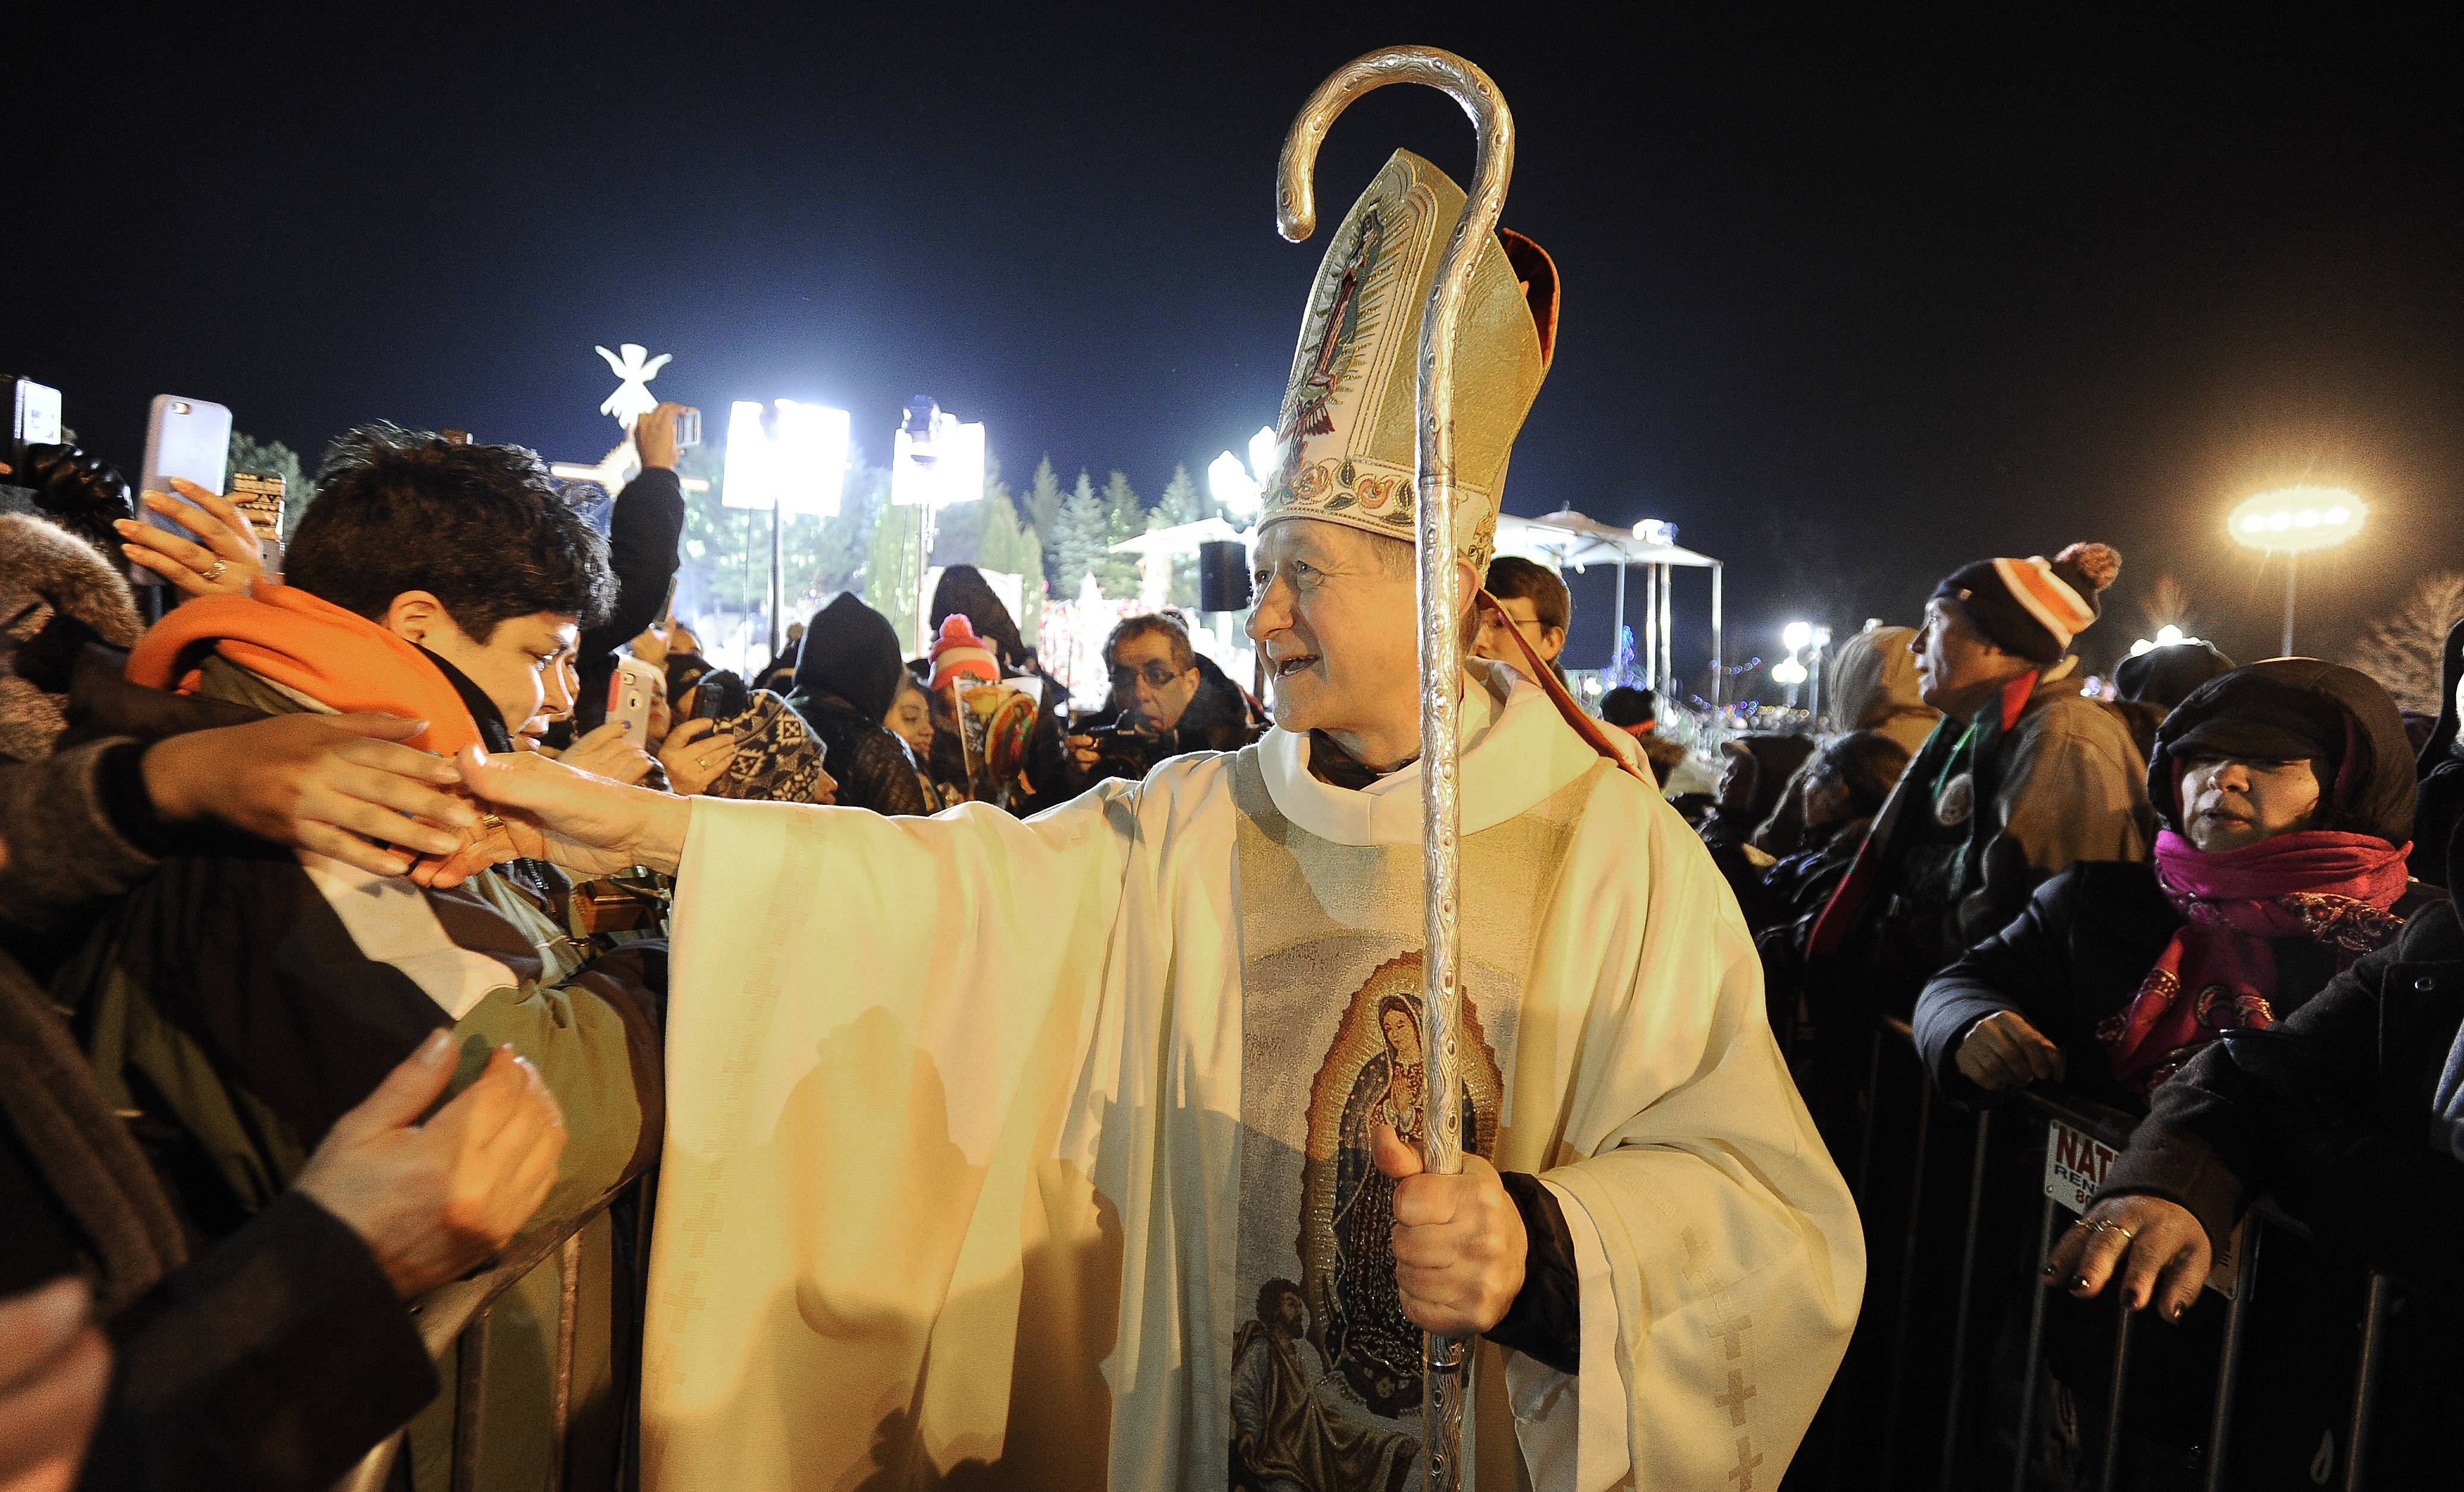 Images: Pilgrimage to Shrine of Our Lady of Guadalupe in Des Plaines